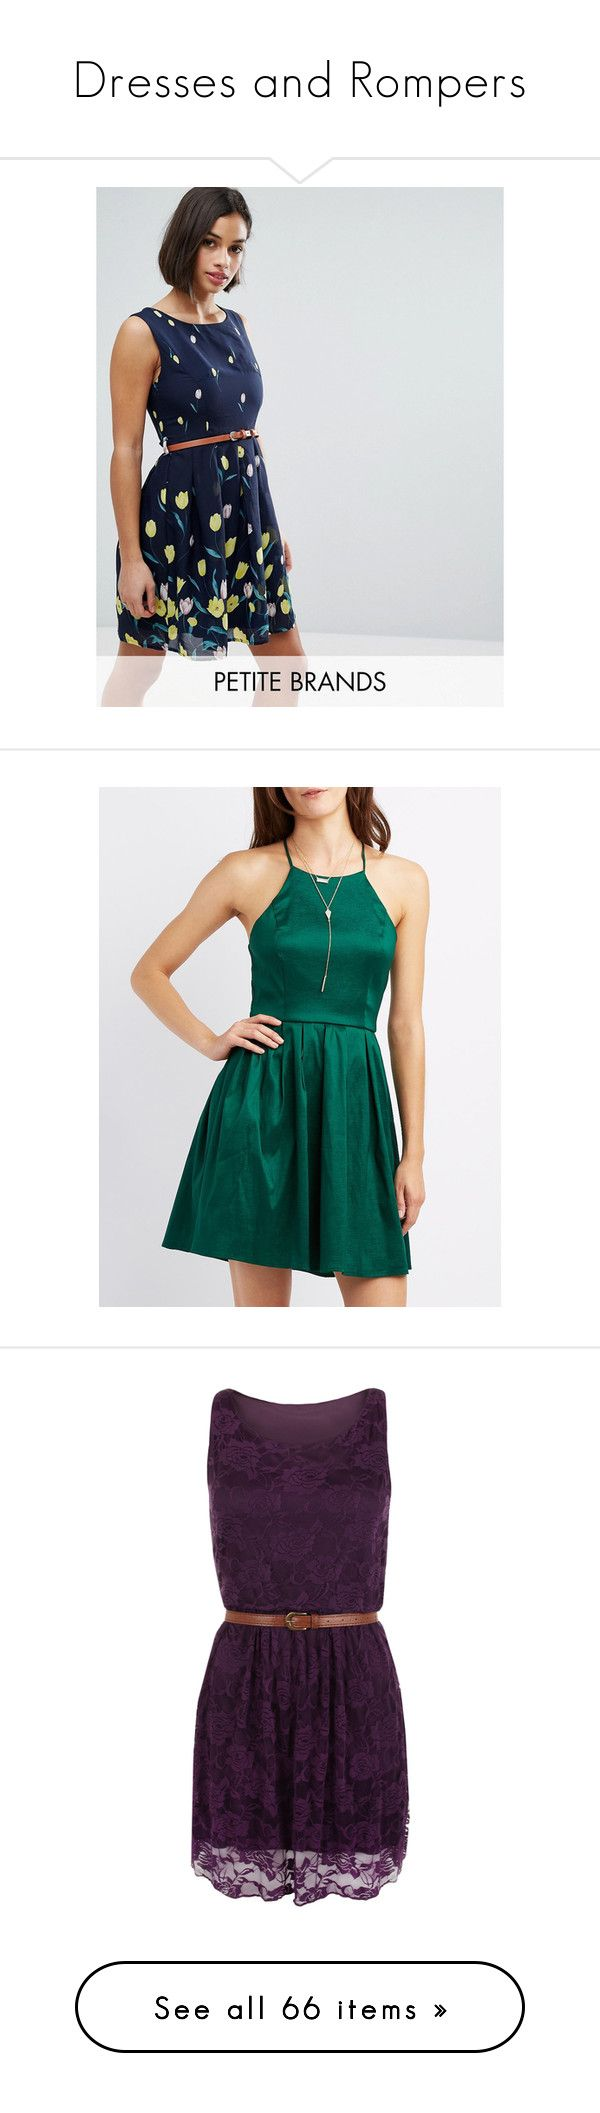 """""""Dresses and Rompers"""" by bama-destiny on Polyvore featuring dresses, navy, petite, chiffon skater dress, navy blue dress, loose fitting dresses, pleated dresses, skater dresses, emerald and emerald cocktail dress"""